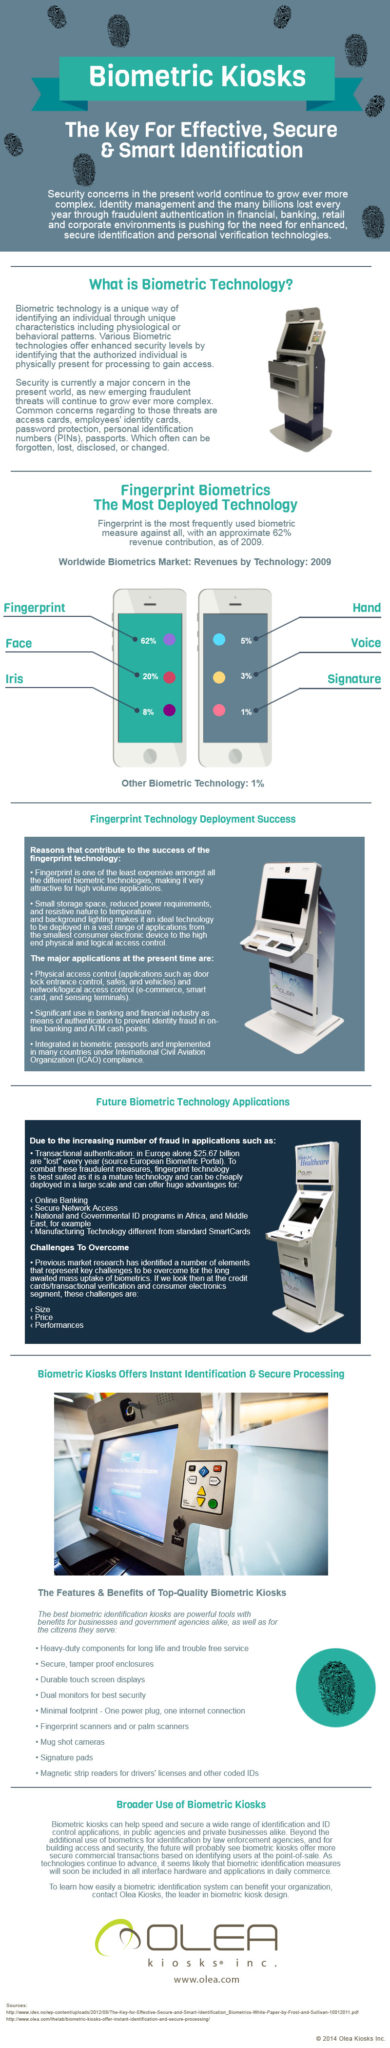 Olea Custom Biometric Kiosks